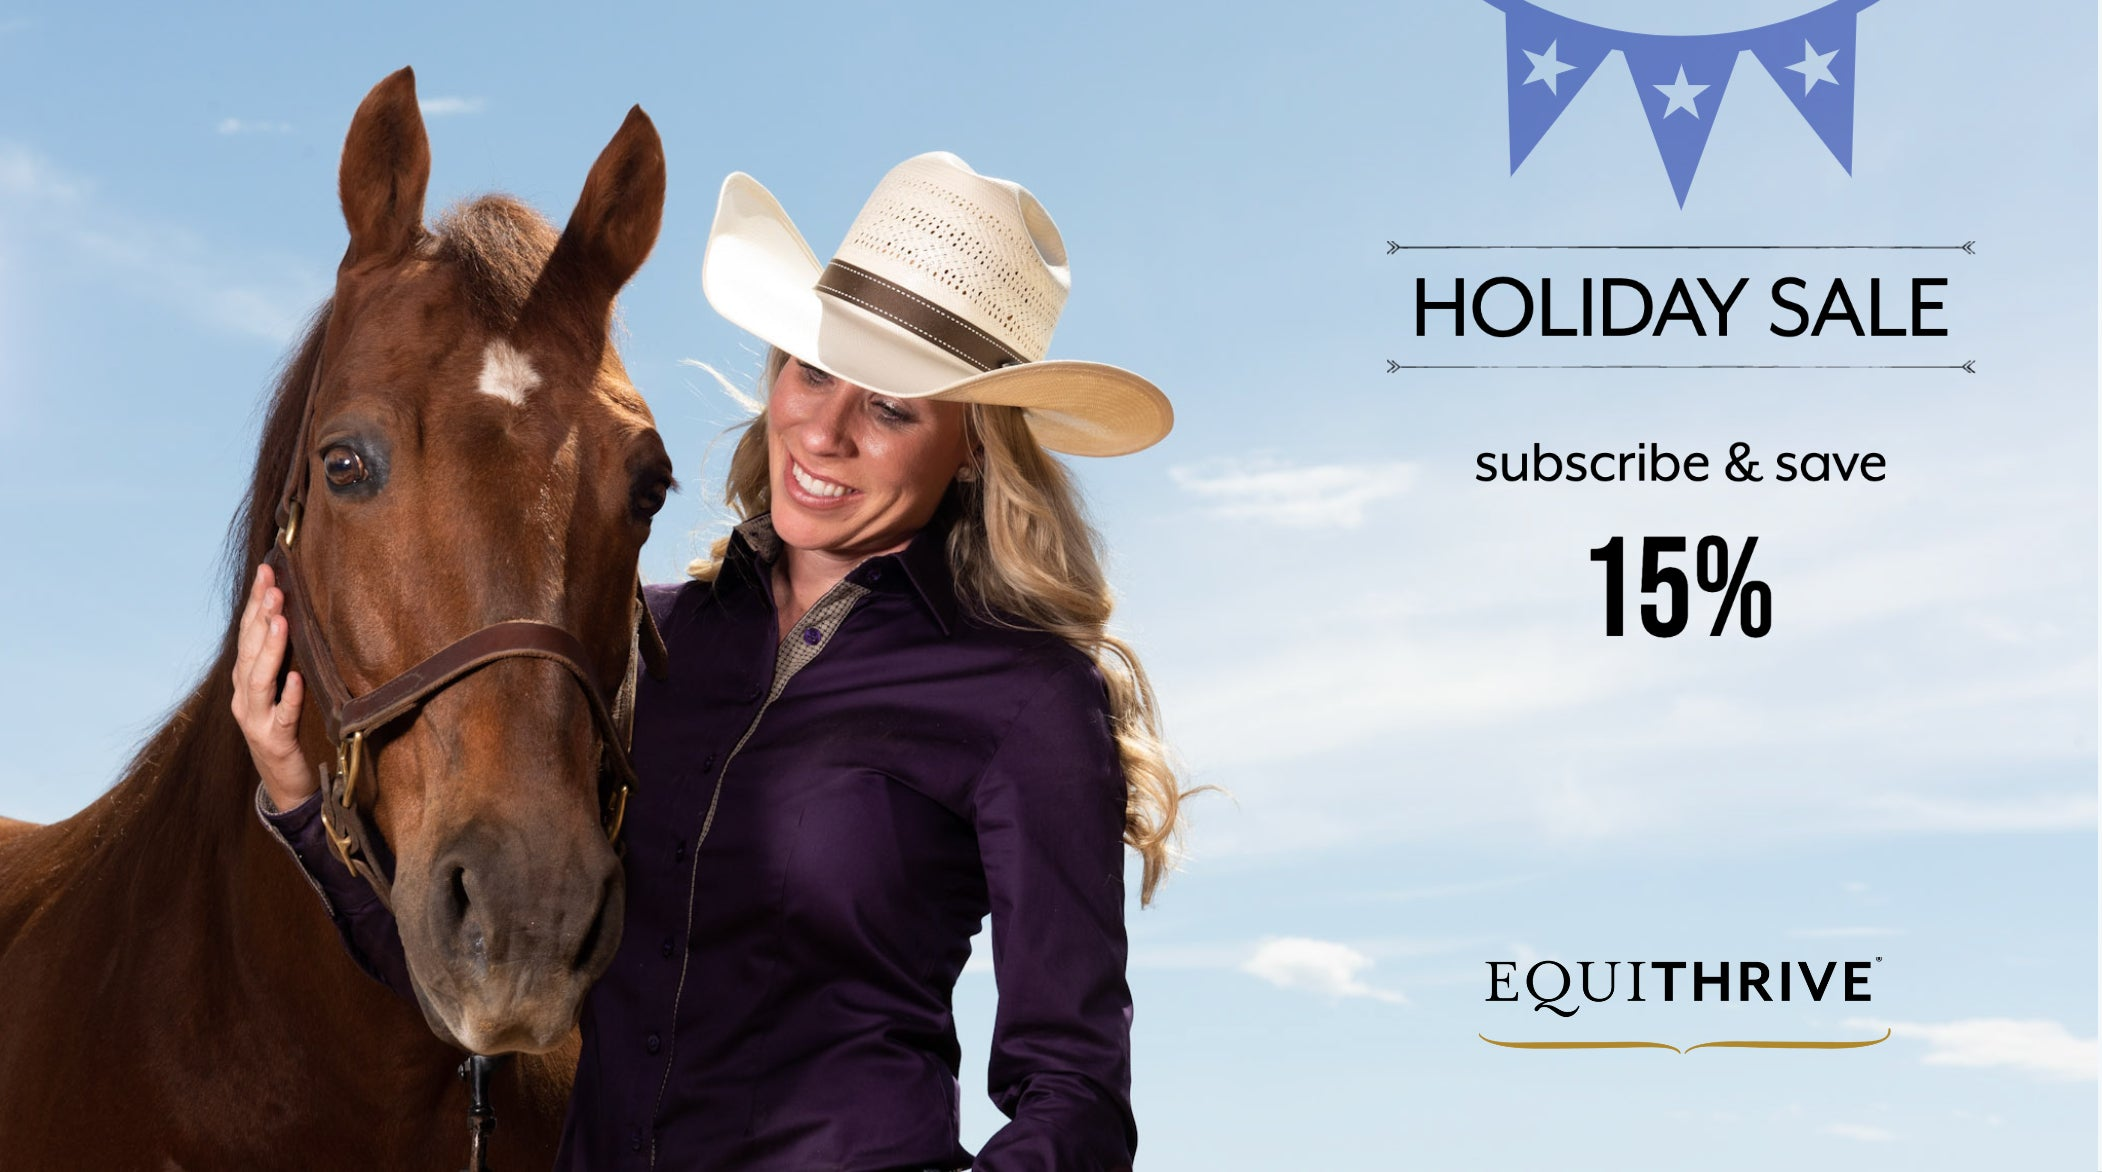 Equithrive sale